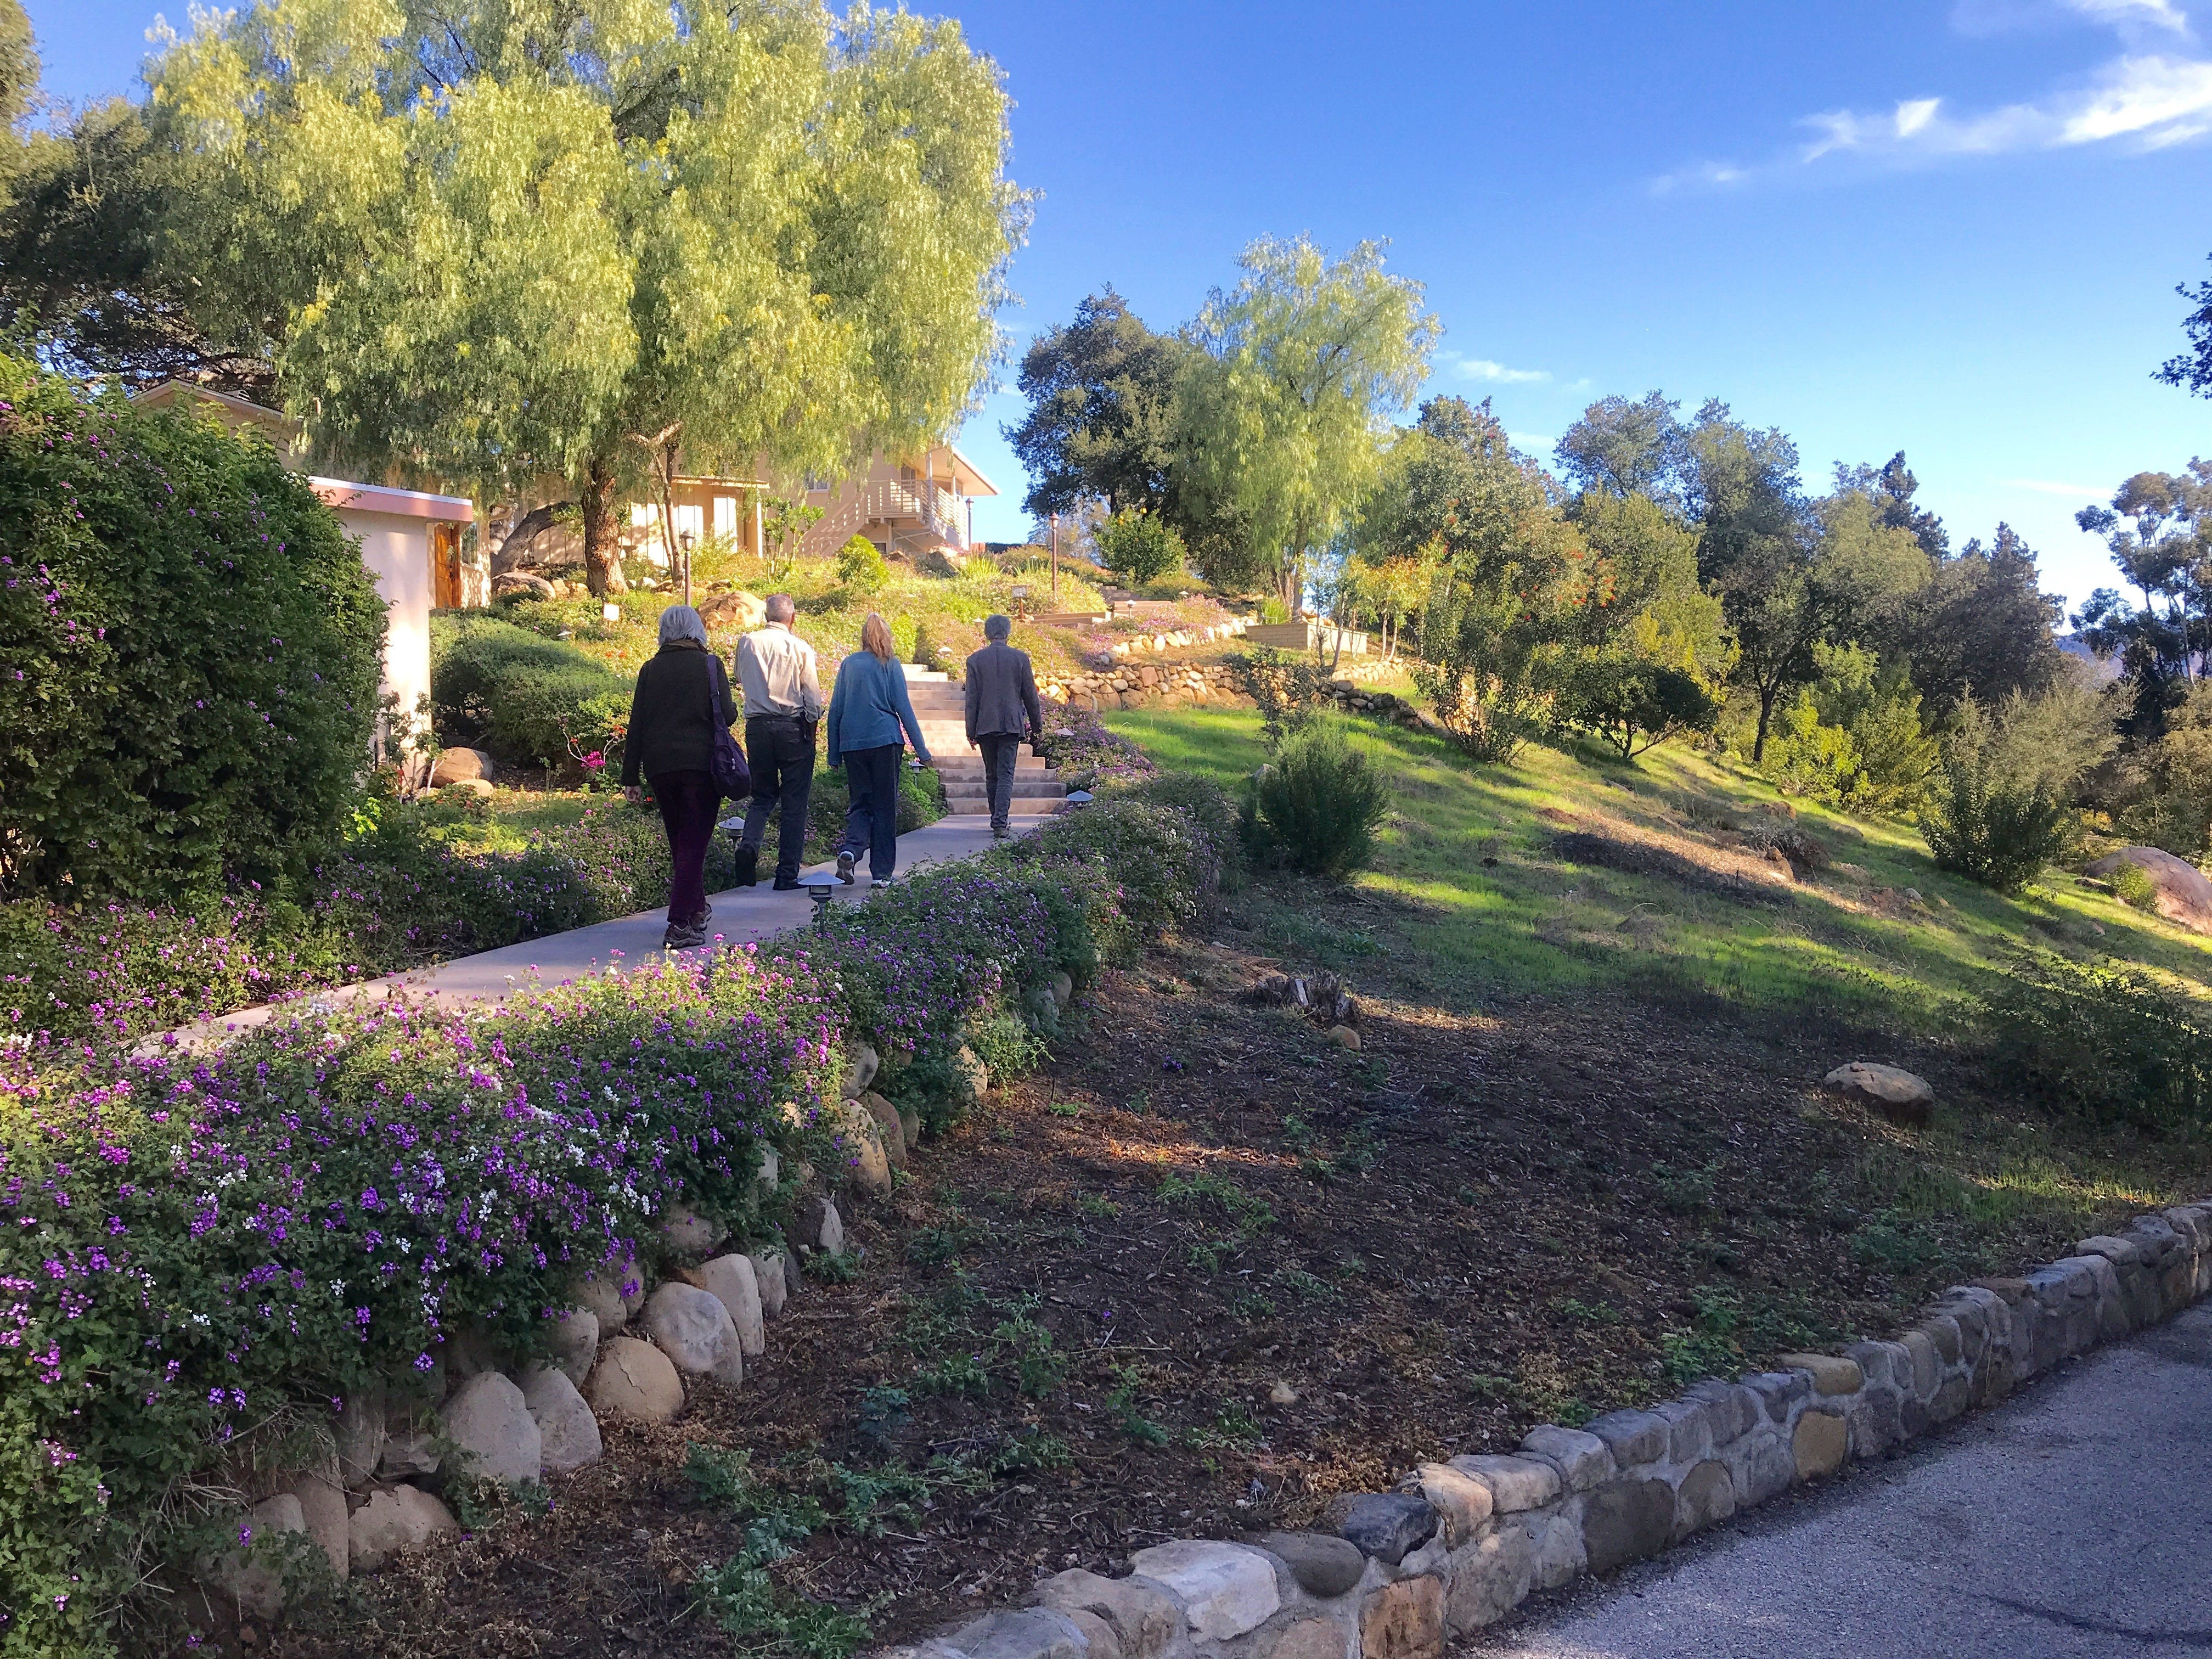 Visitors walk through the scenic grounds of the Ojai Retreat.